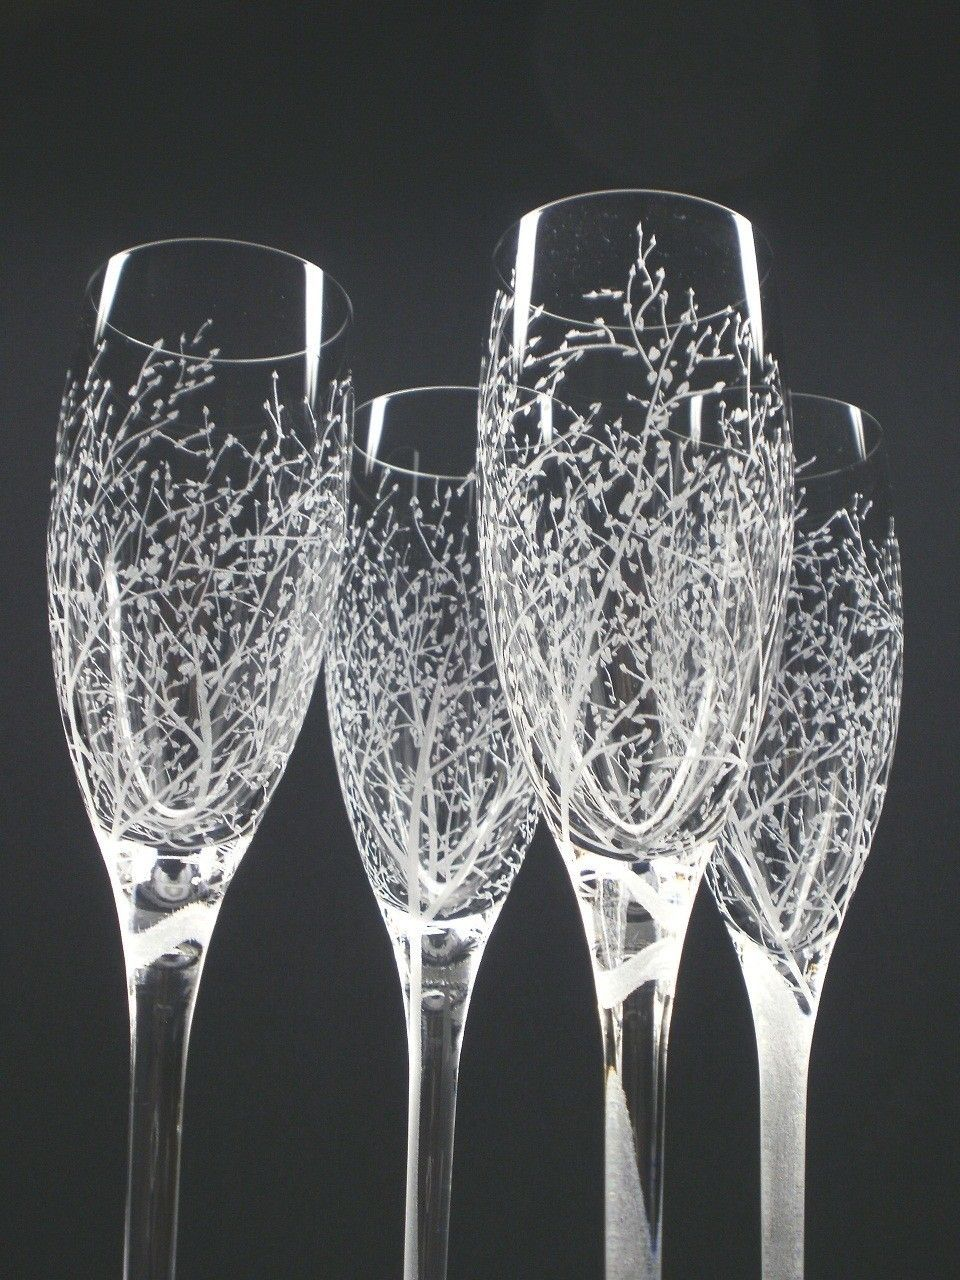 4 champagne flutes hand engraved branches and leaves want to use etching cream to paint designs on plain glasses and vases halloween design reviewsmspy